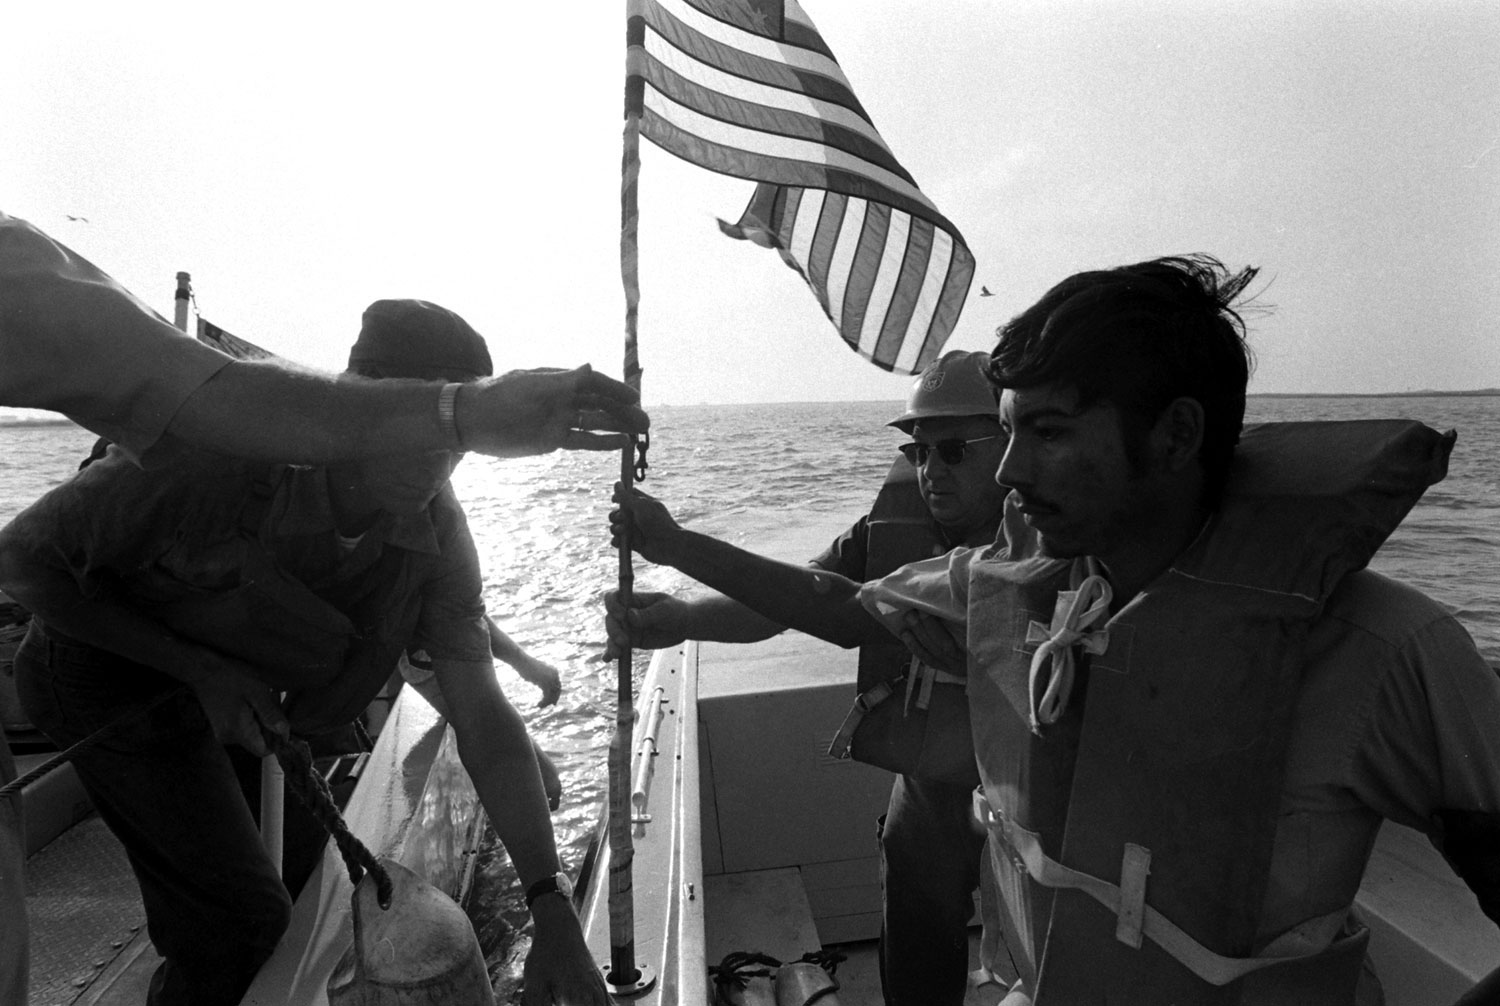 Customs agents with suspected drug smugglers, Falcon Lake, Texas, 1969.